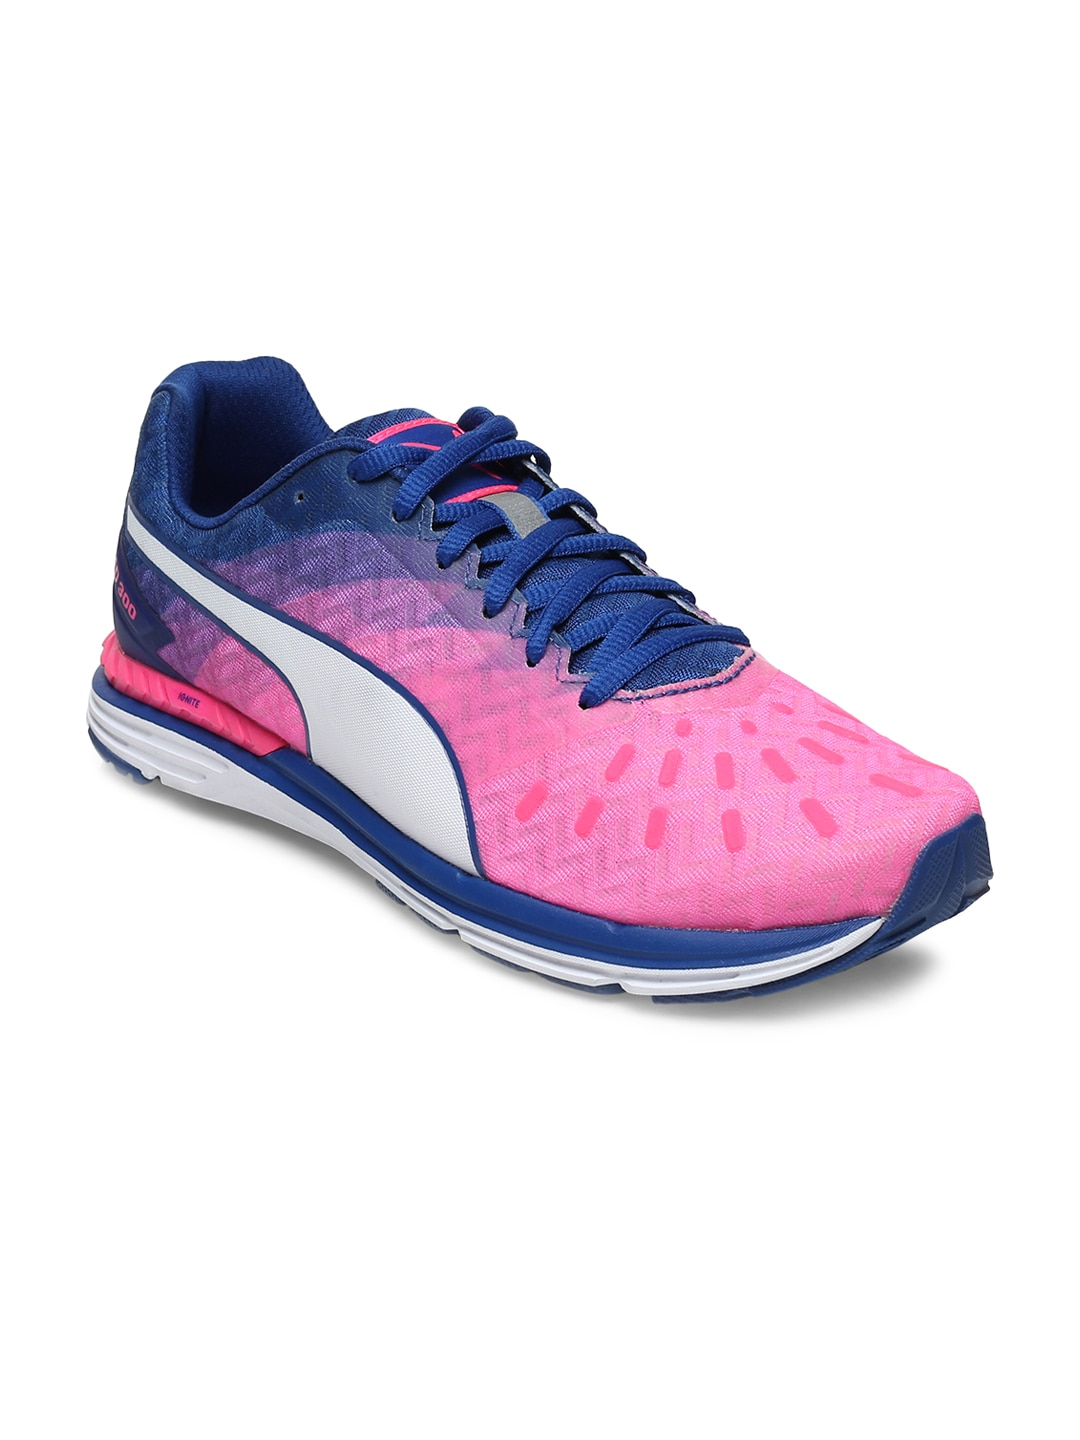 cc1a29df9d7e Shoes 300 Sports - Buy Shoes 300 Sports online in India